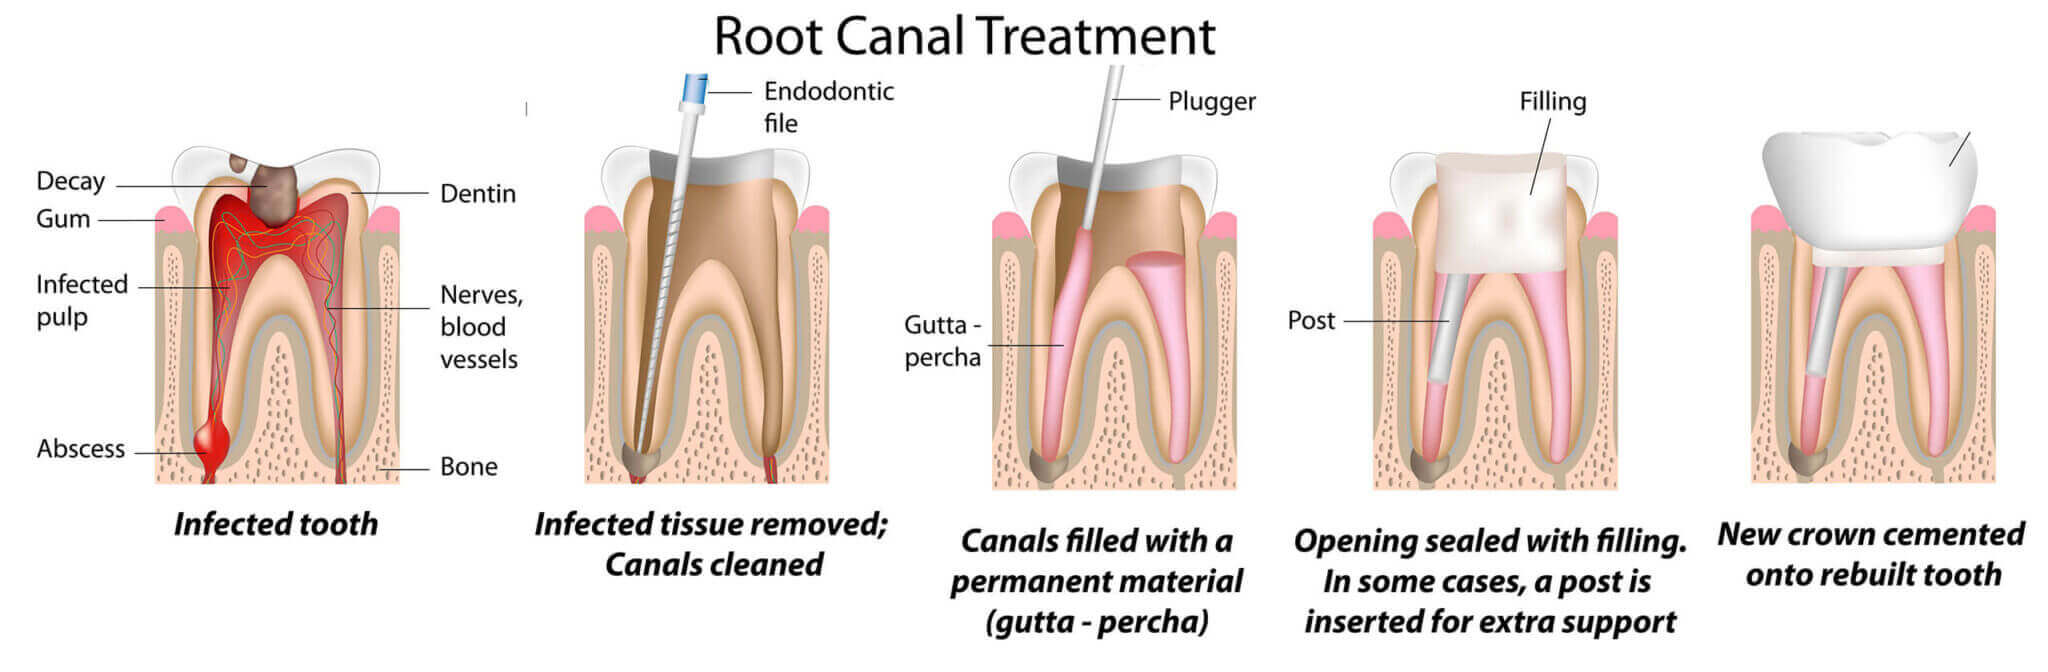 Root Canal Treatments in DFW